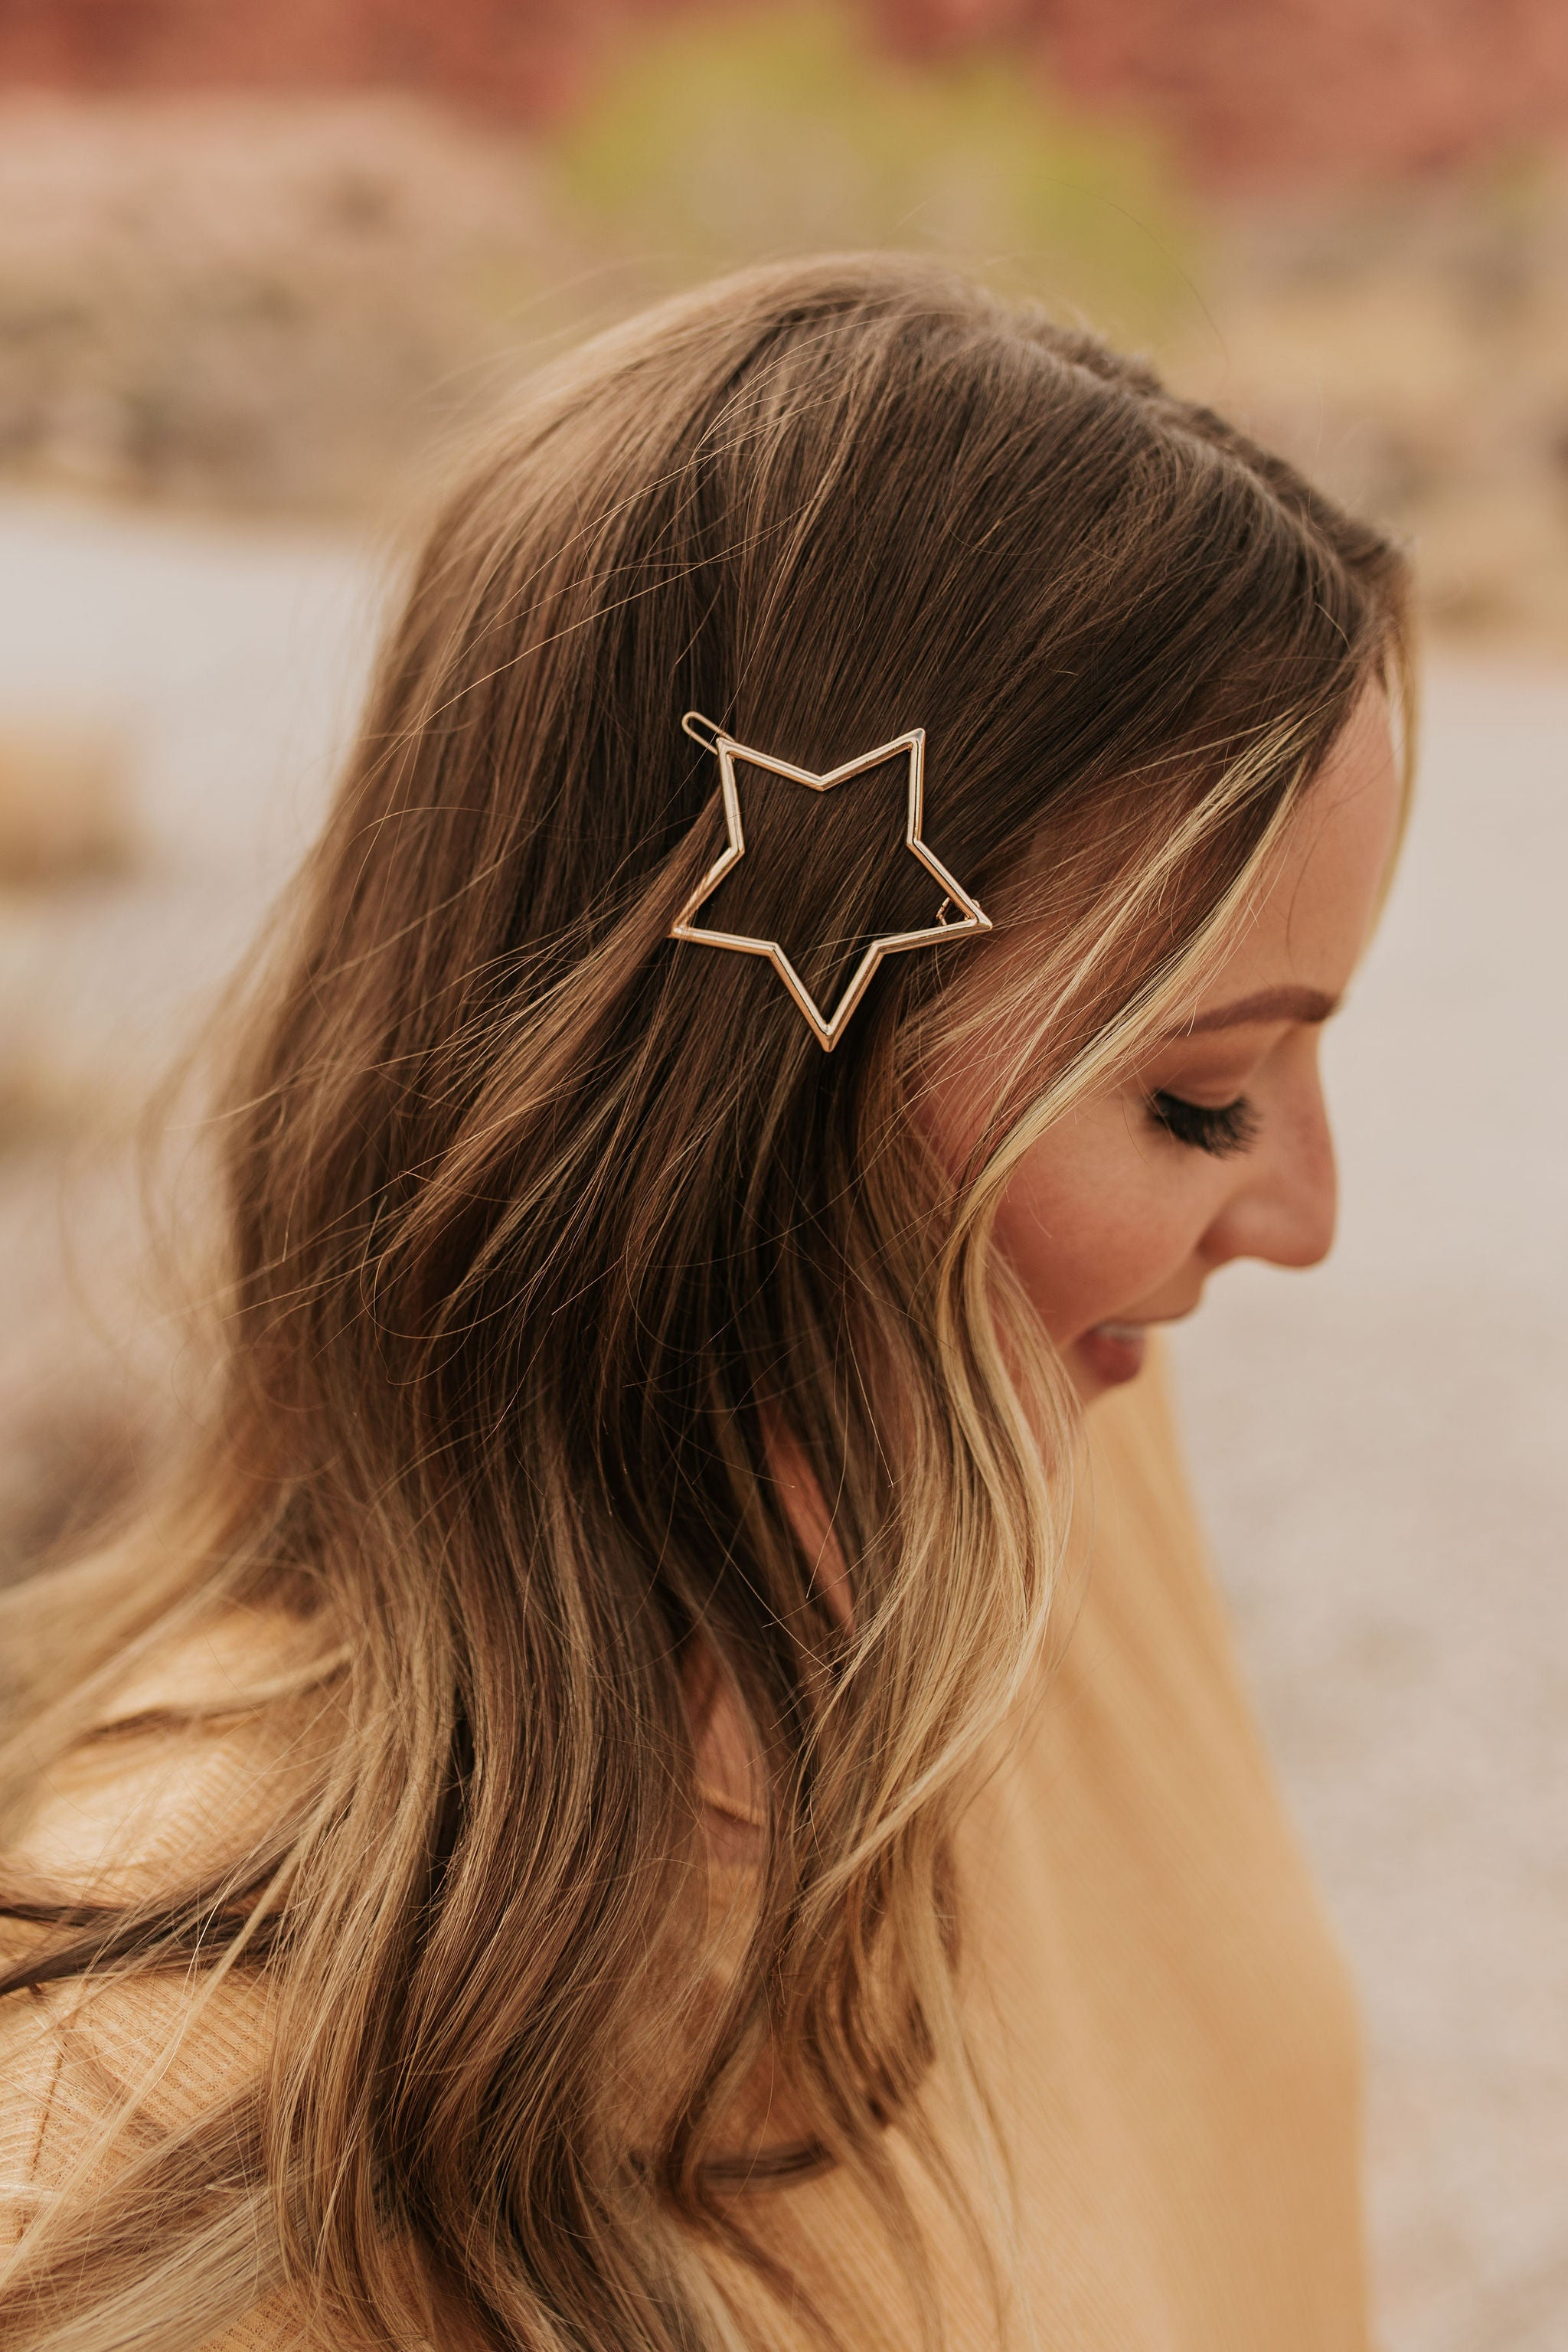 THE STAR HAIR PIN IN GOLD